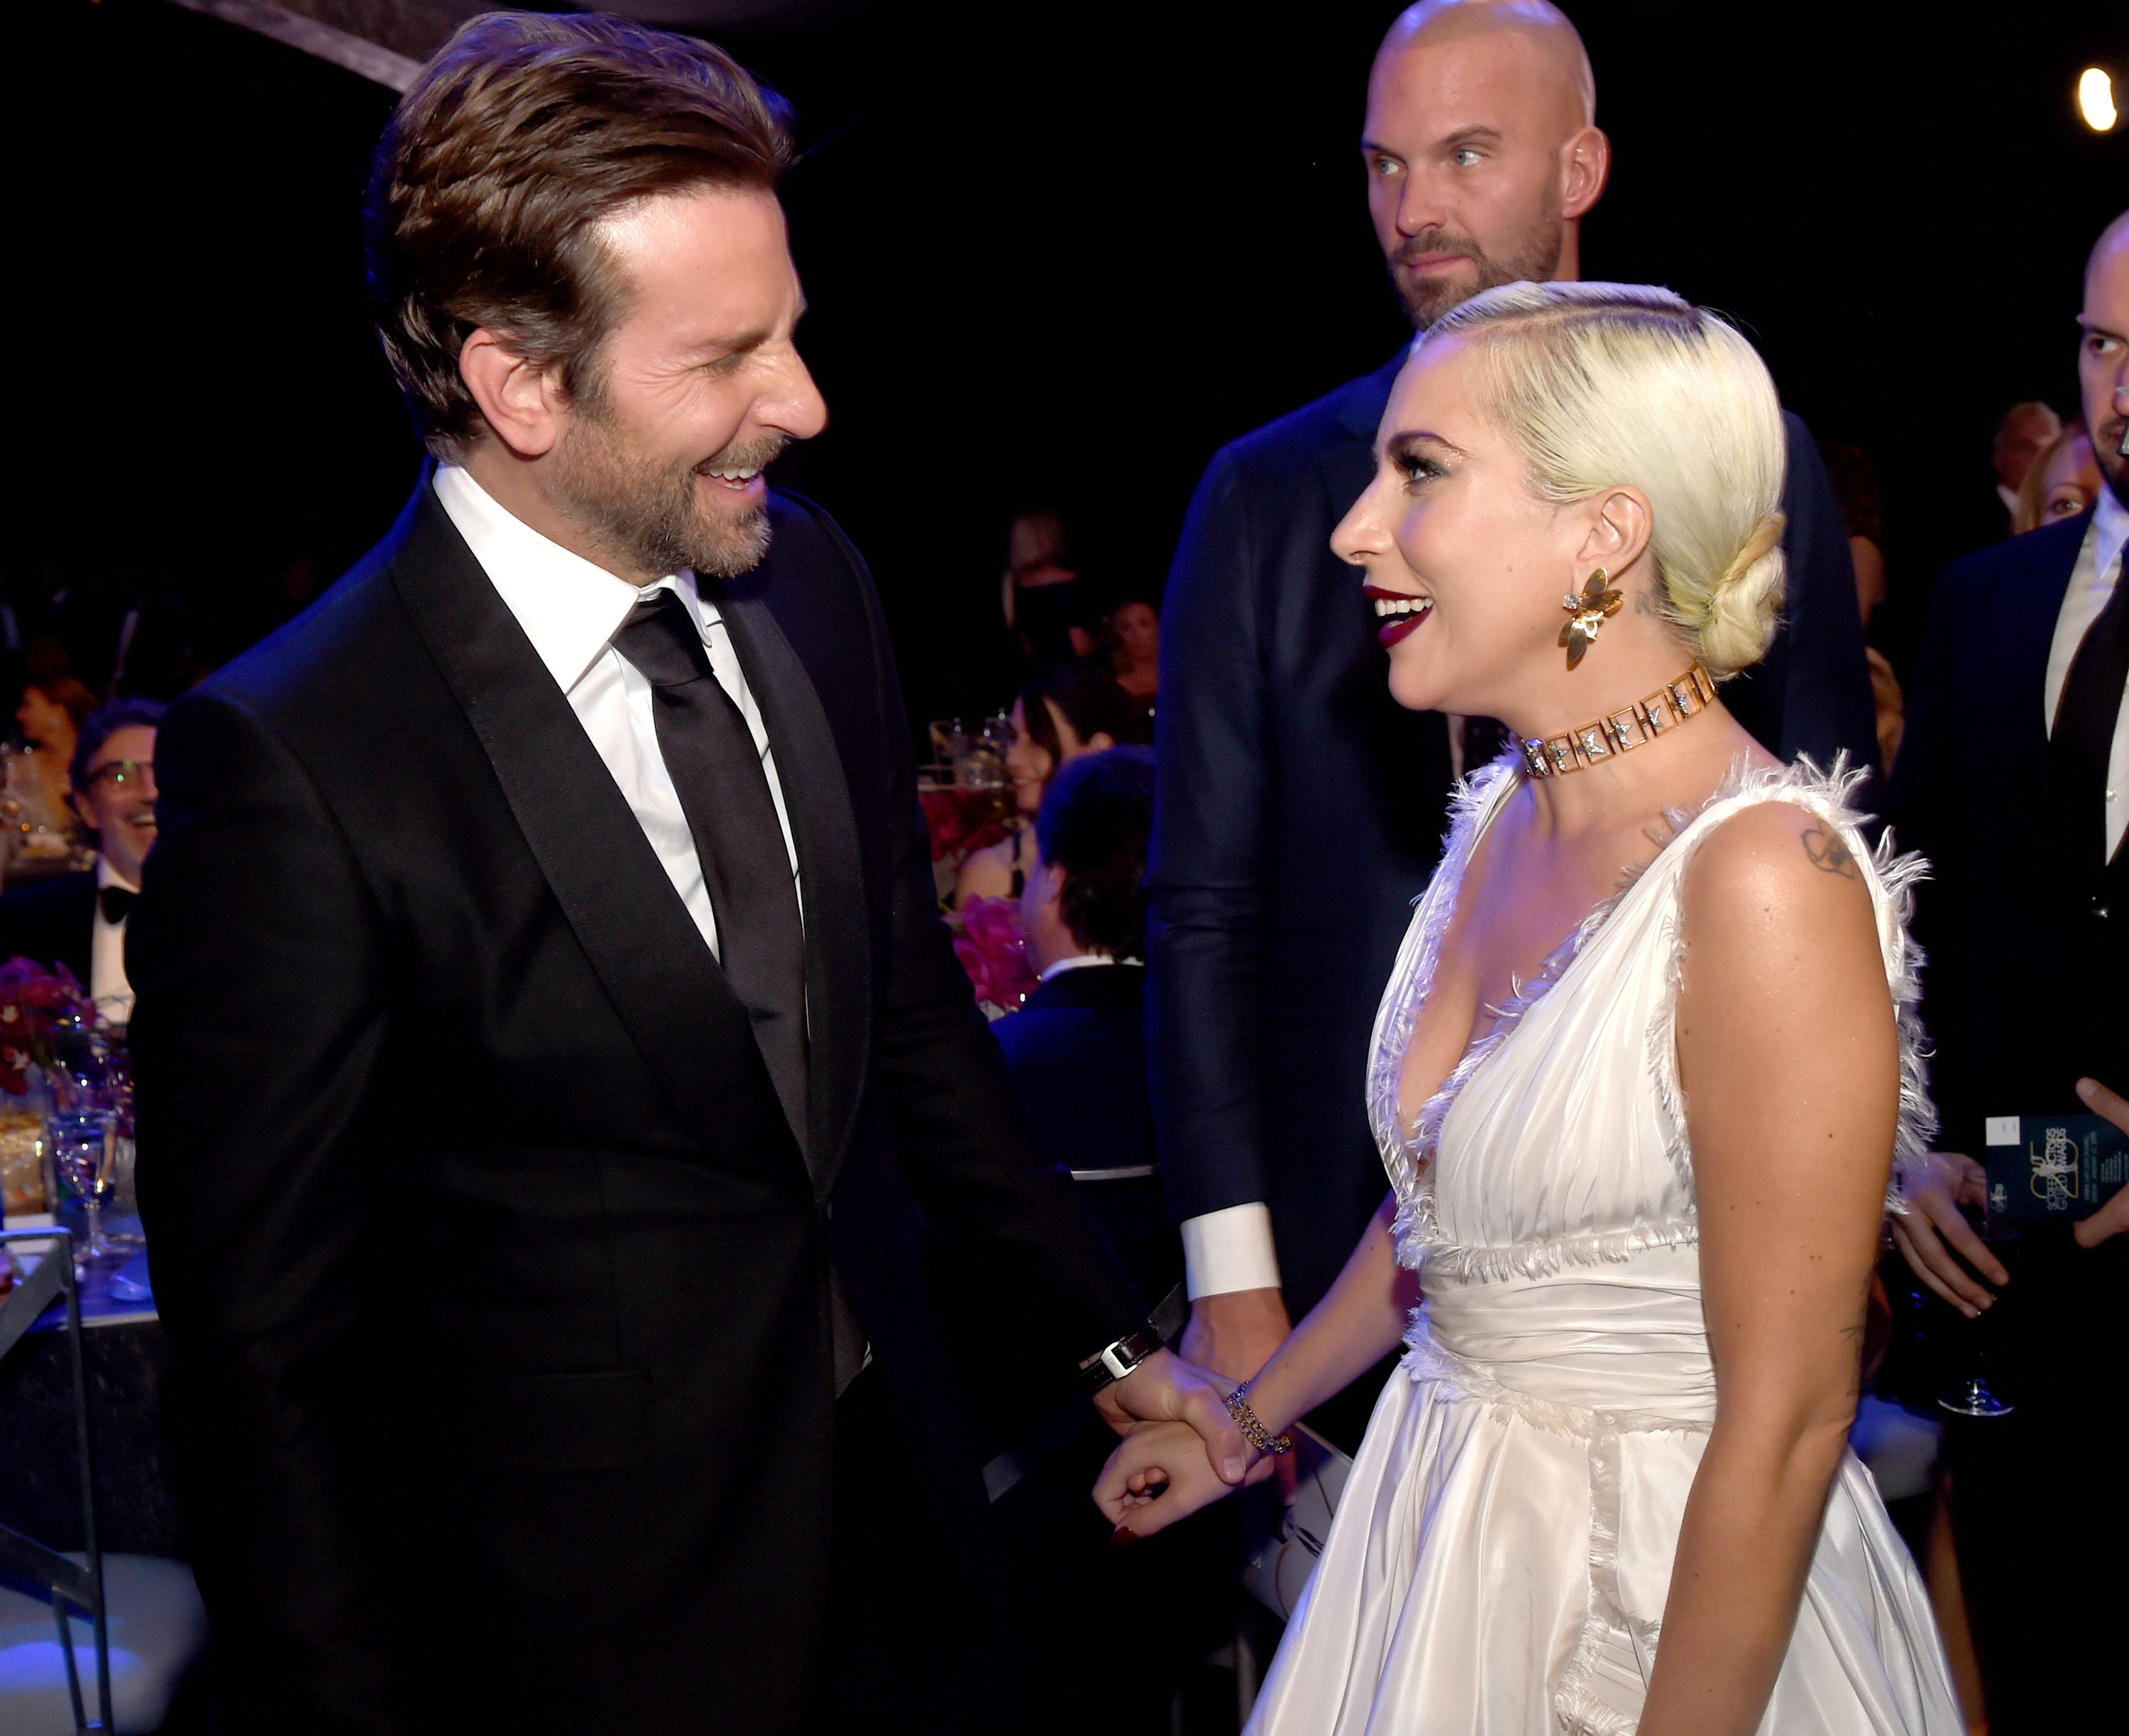 Lady Gaga and Bradley Cooper at the 2019 SAG Awards | Photo: Getty Images